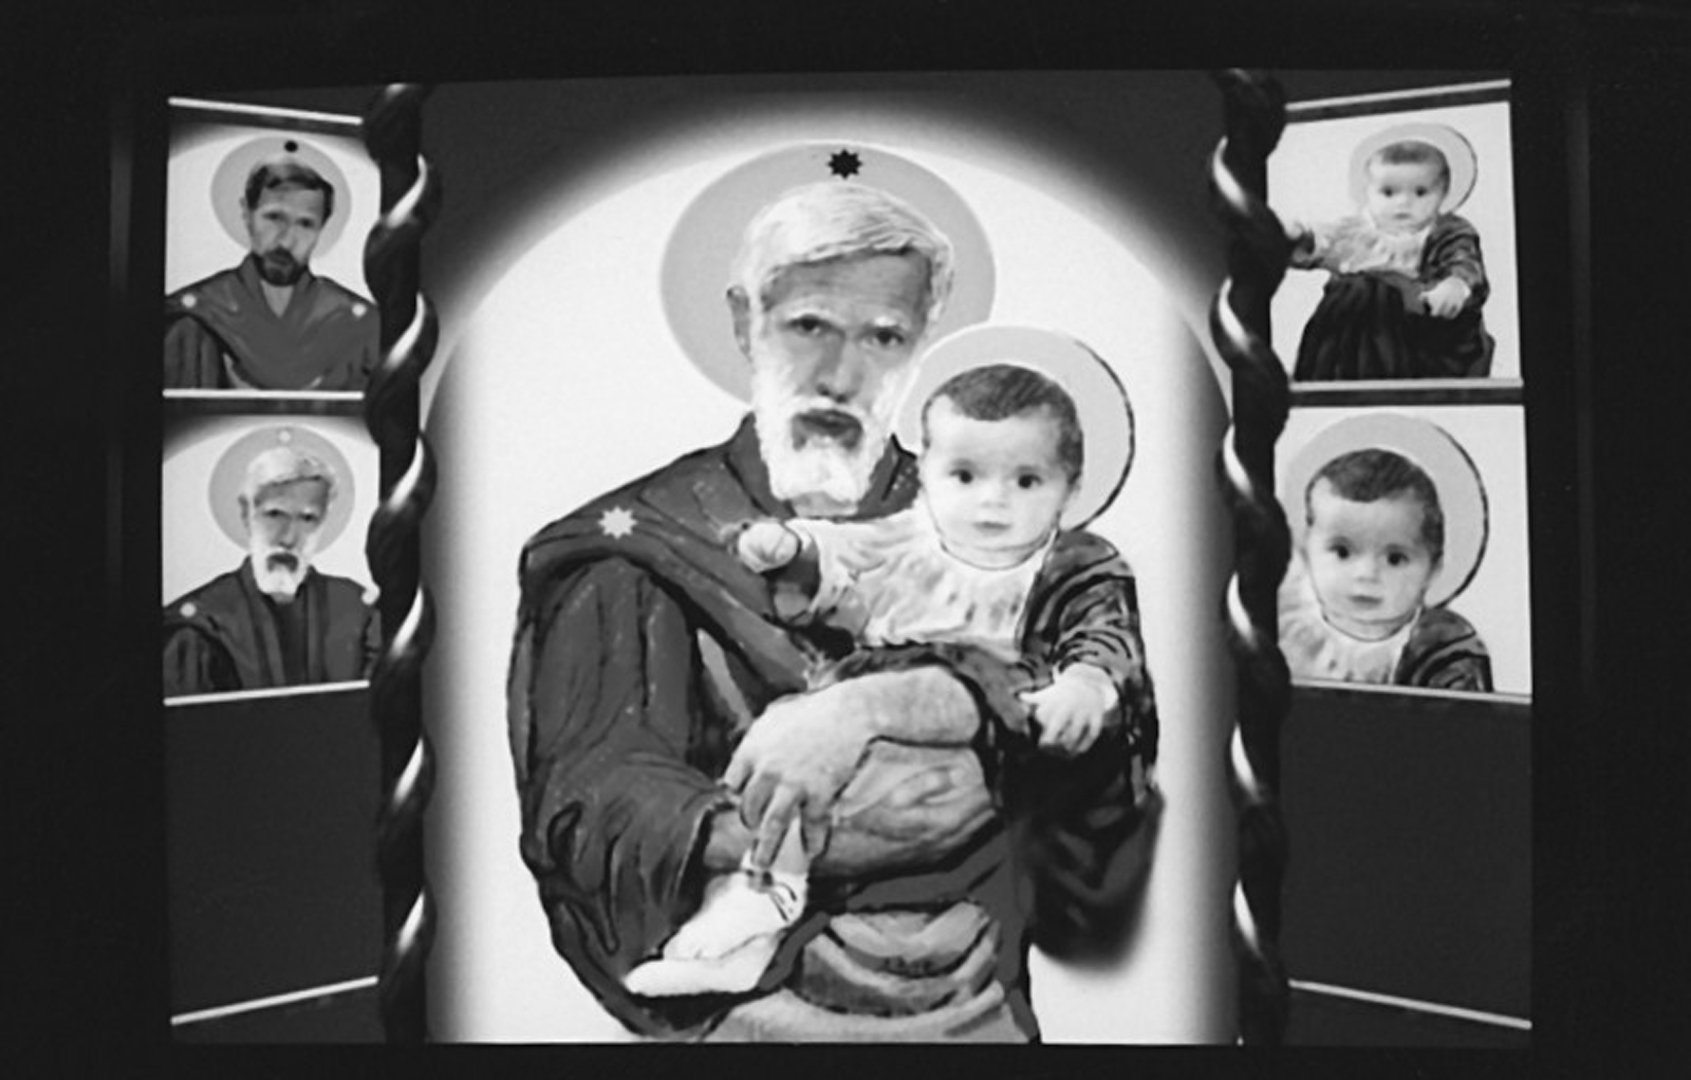 ©, Jordan Detev, The Virgin Panimnitos